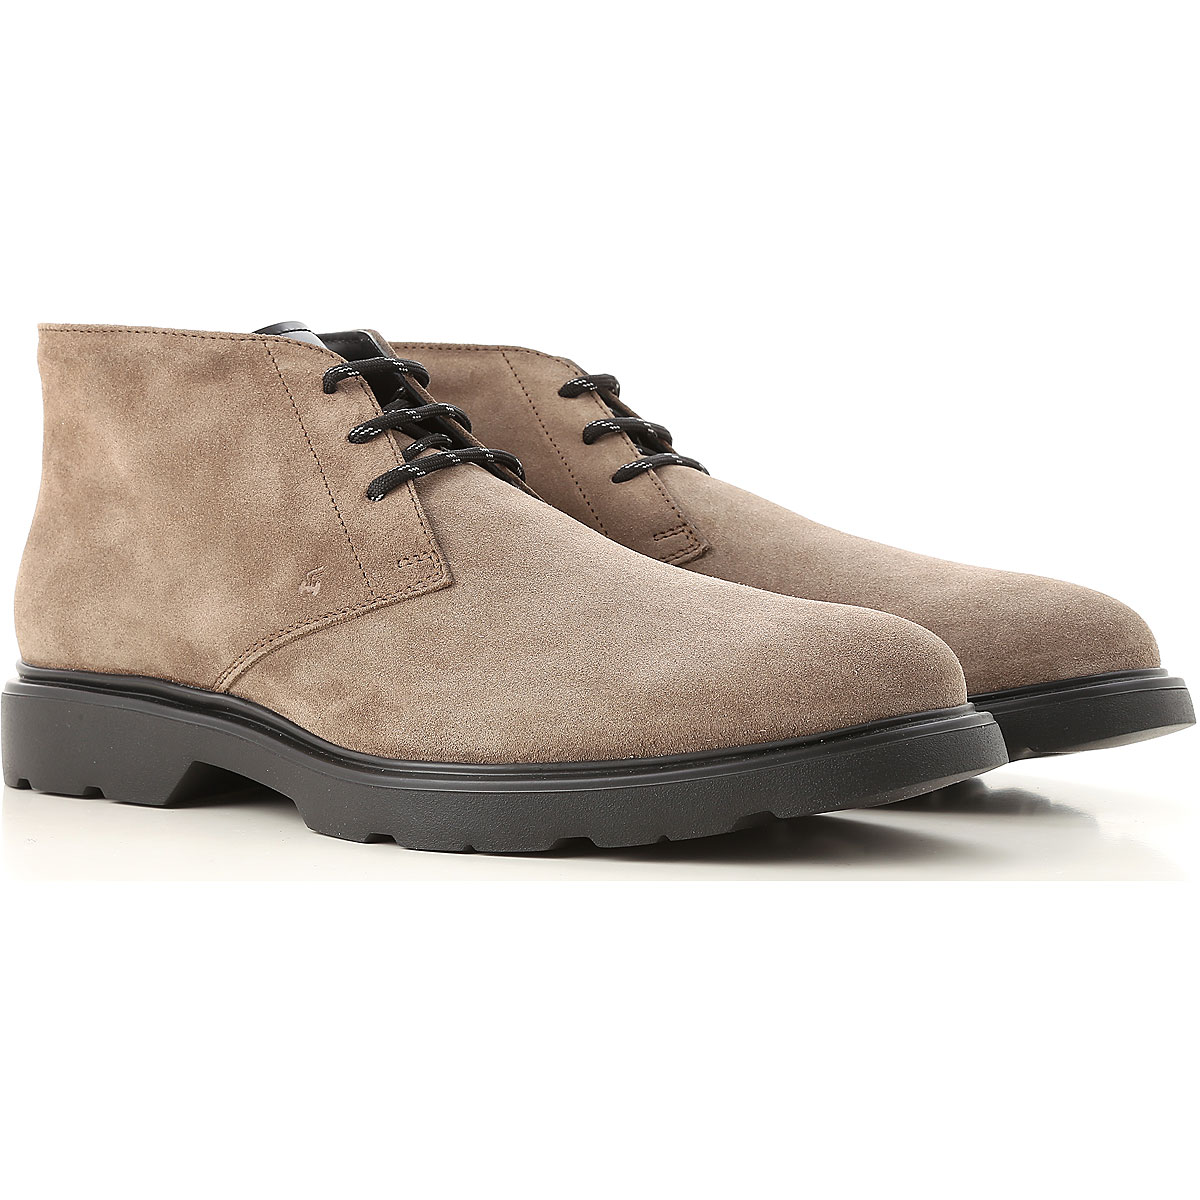 Hogan Boots for Men, Booties On Sale, Sand, Suede leather, 2019, 10 11 12 7 7.5 8